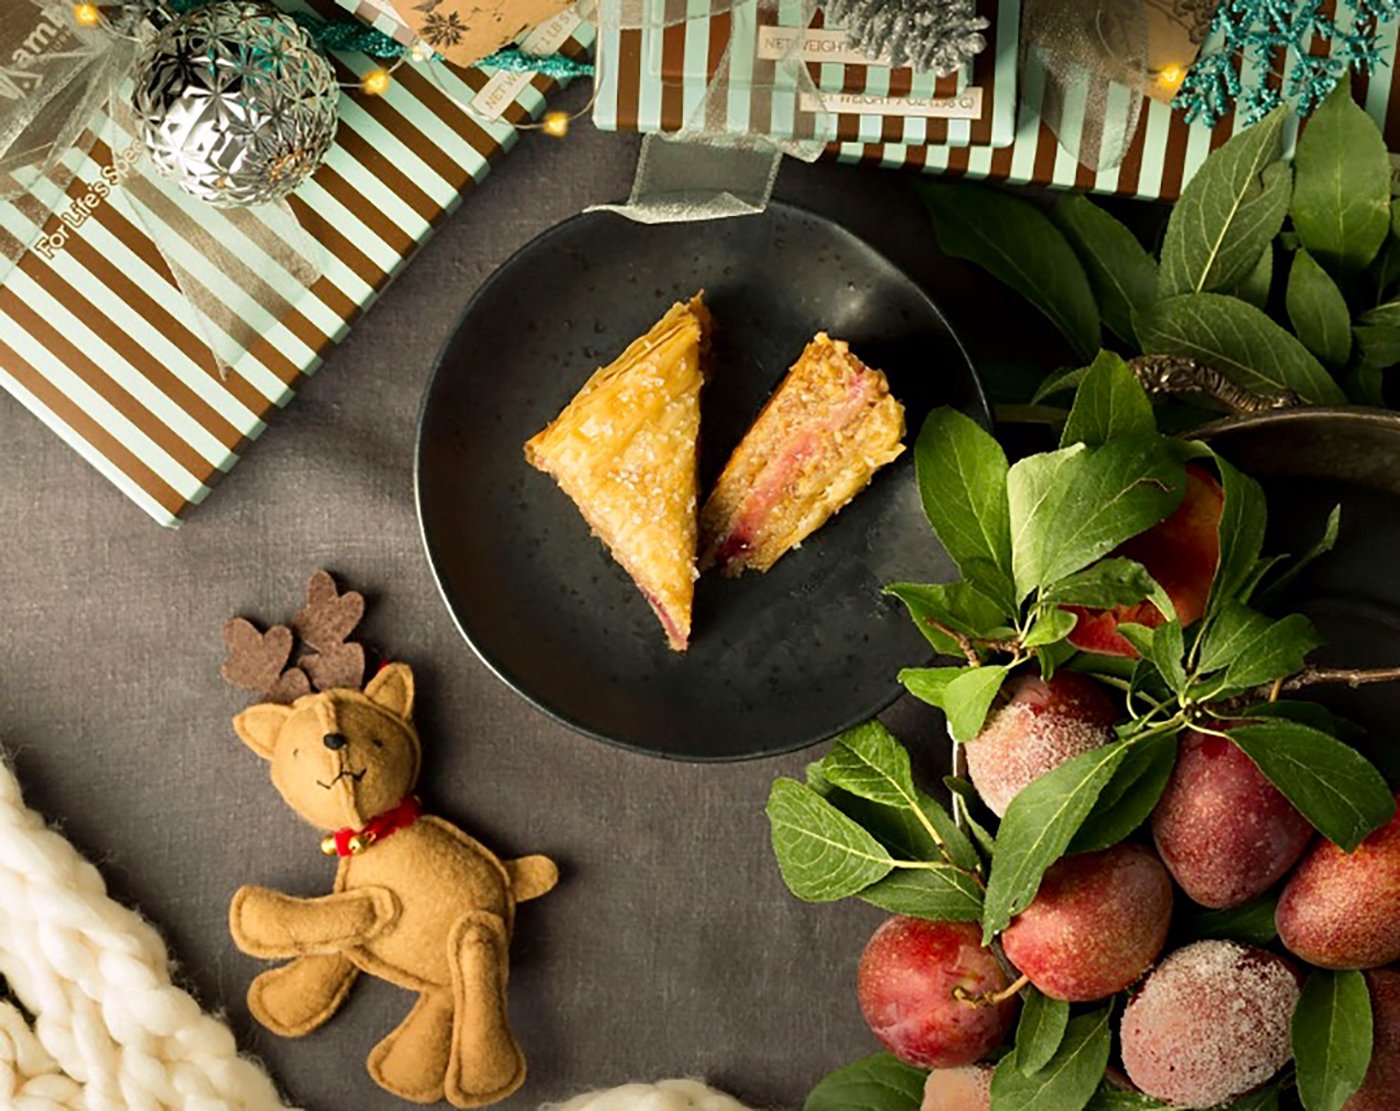 Sheer Ambrosia baklava is sweet and succulent, a winning combination of flaky pastry and stunning fillings.